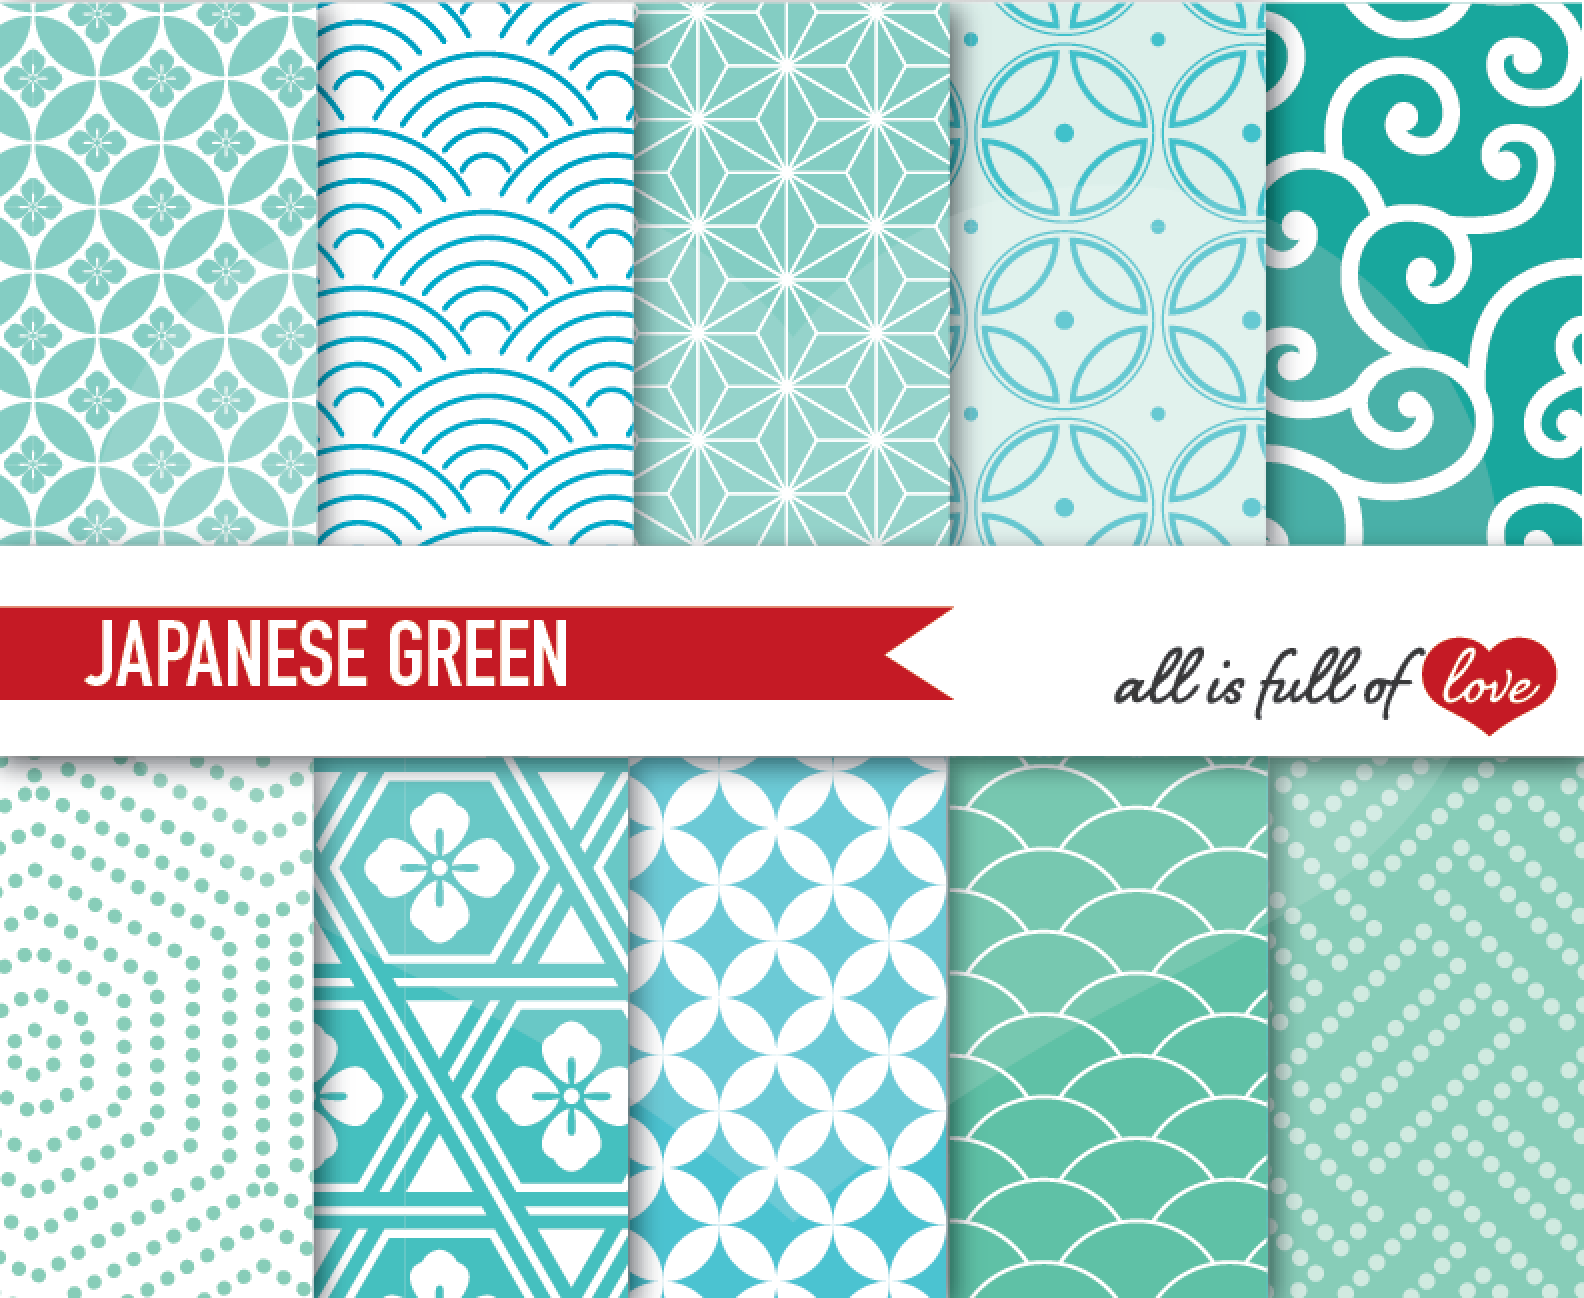 Japanese Backgrounds in Mint Green Digital Graphics Printable 1584x1298